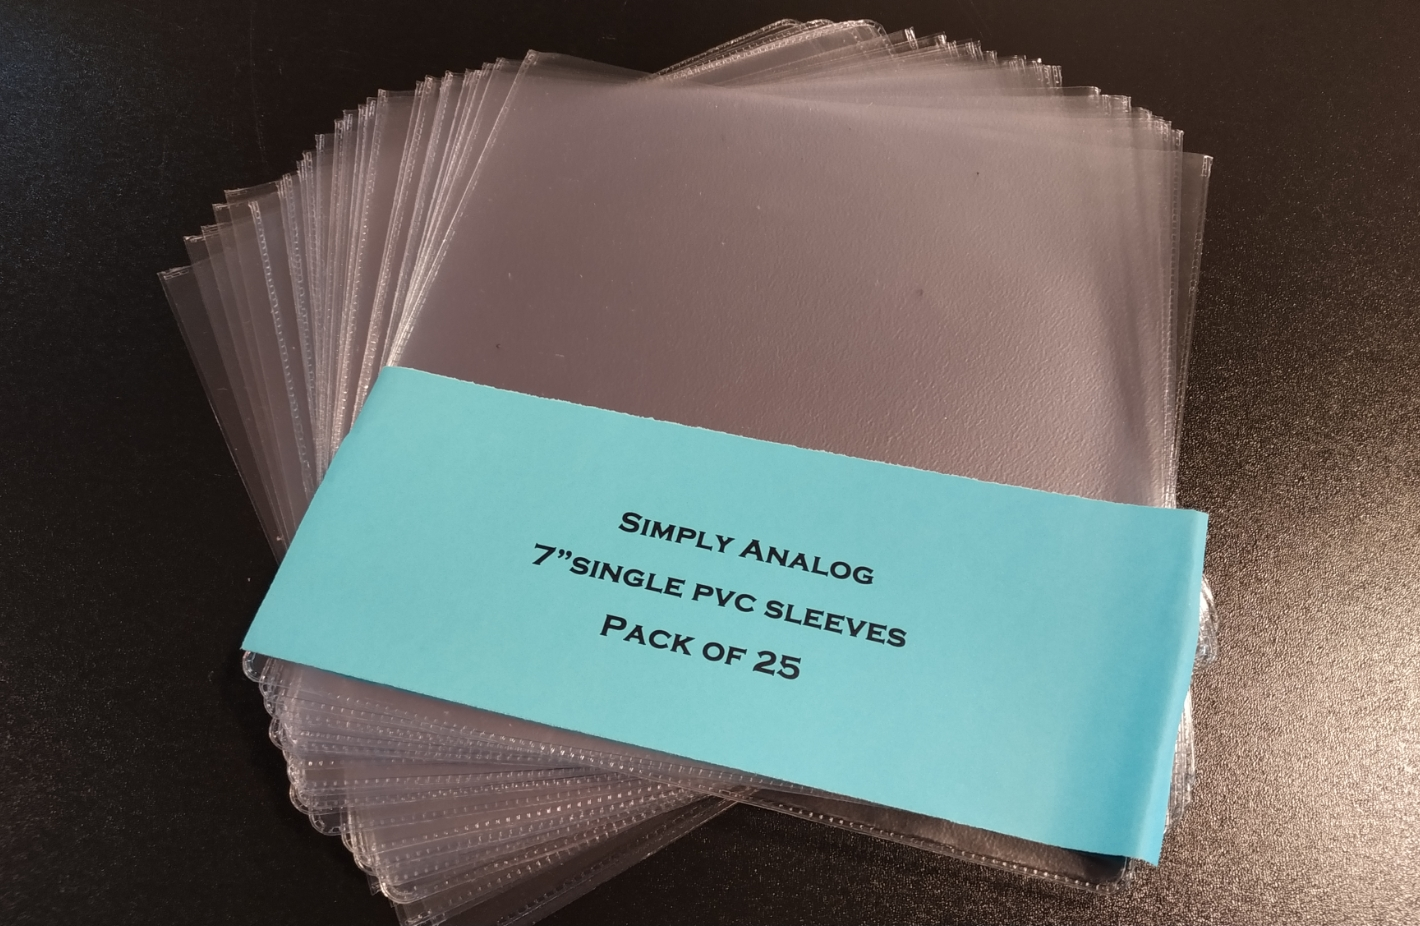 "Simply Analog - 7"" SINGLE PVC SLEEVES"